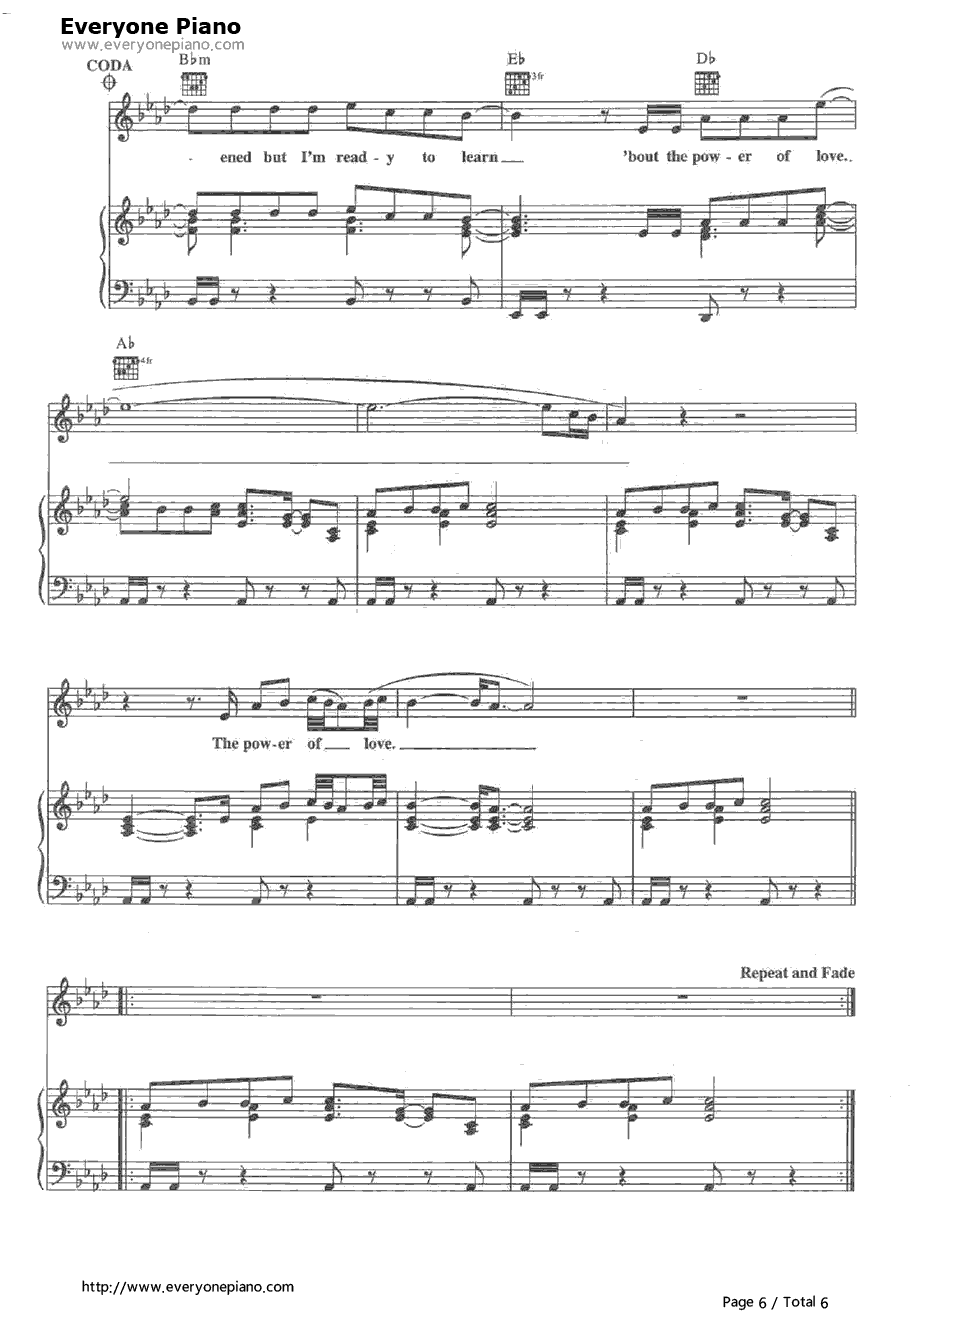 The power of love celine dion free piano sheet music piano chords the power of love celine dion stave preview 6 hexwebz Images